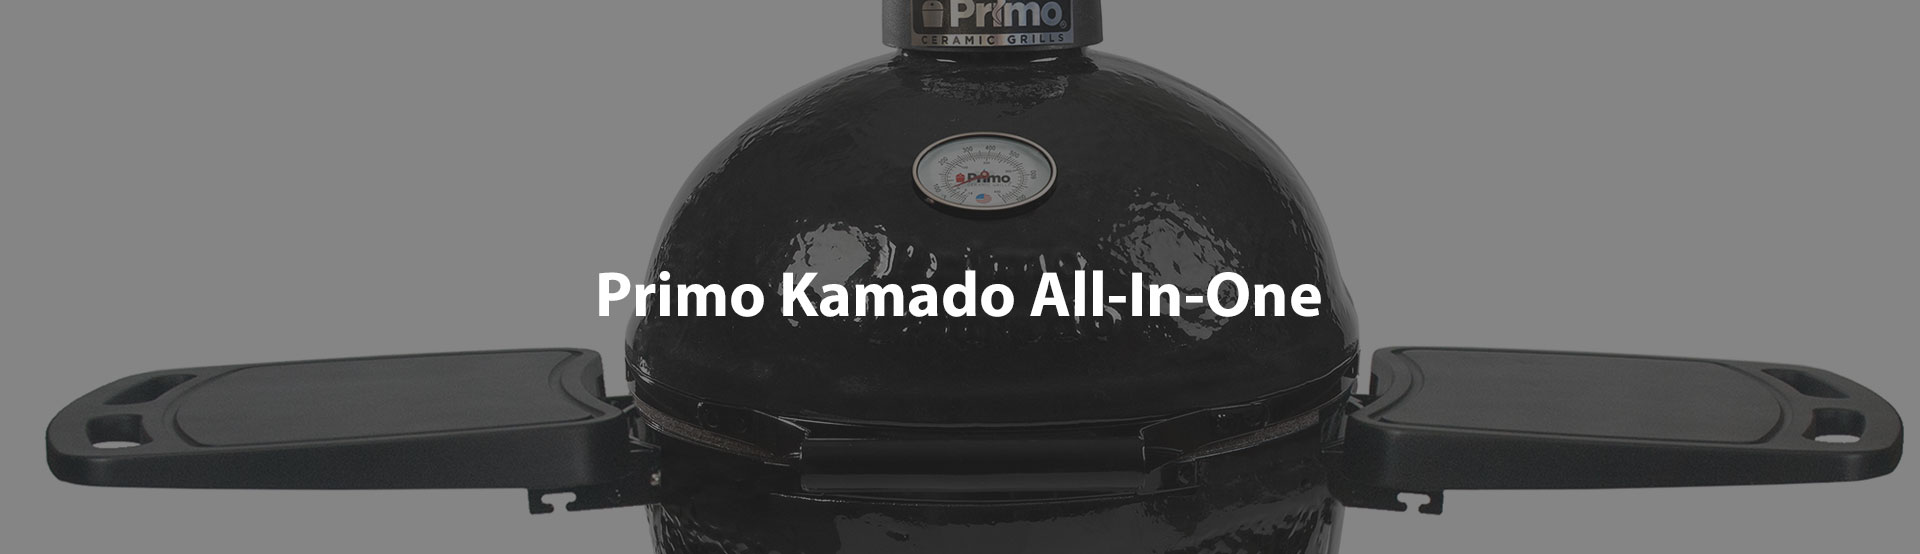 Primo Kamado All-In-One BBQ Grill